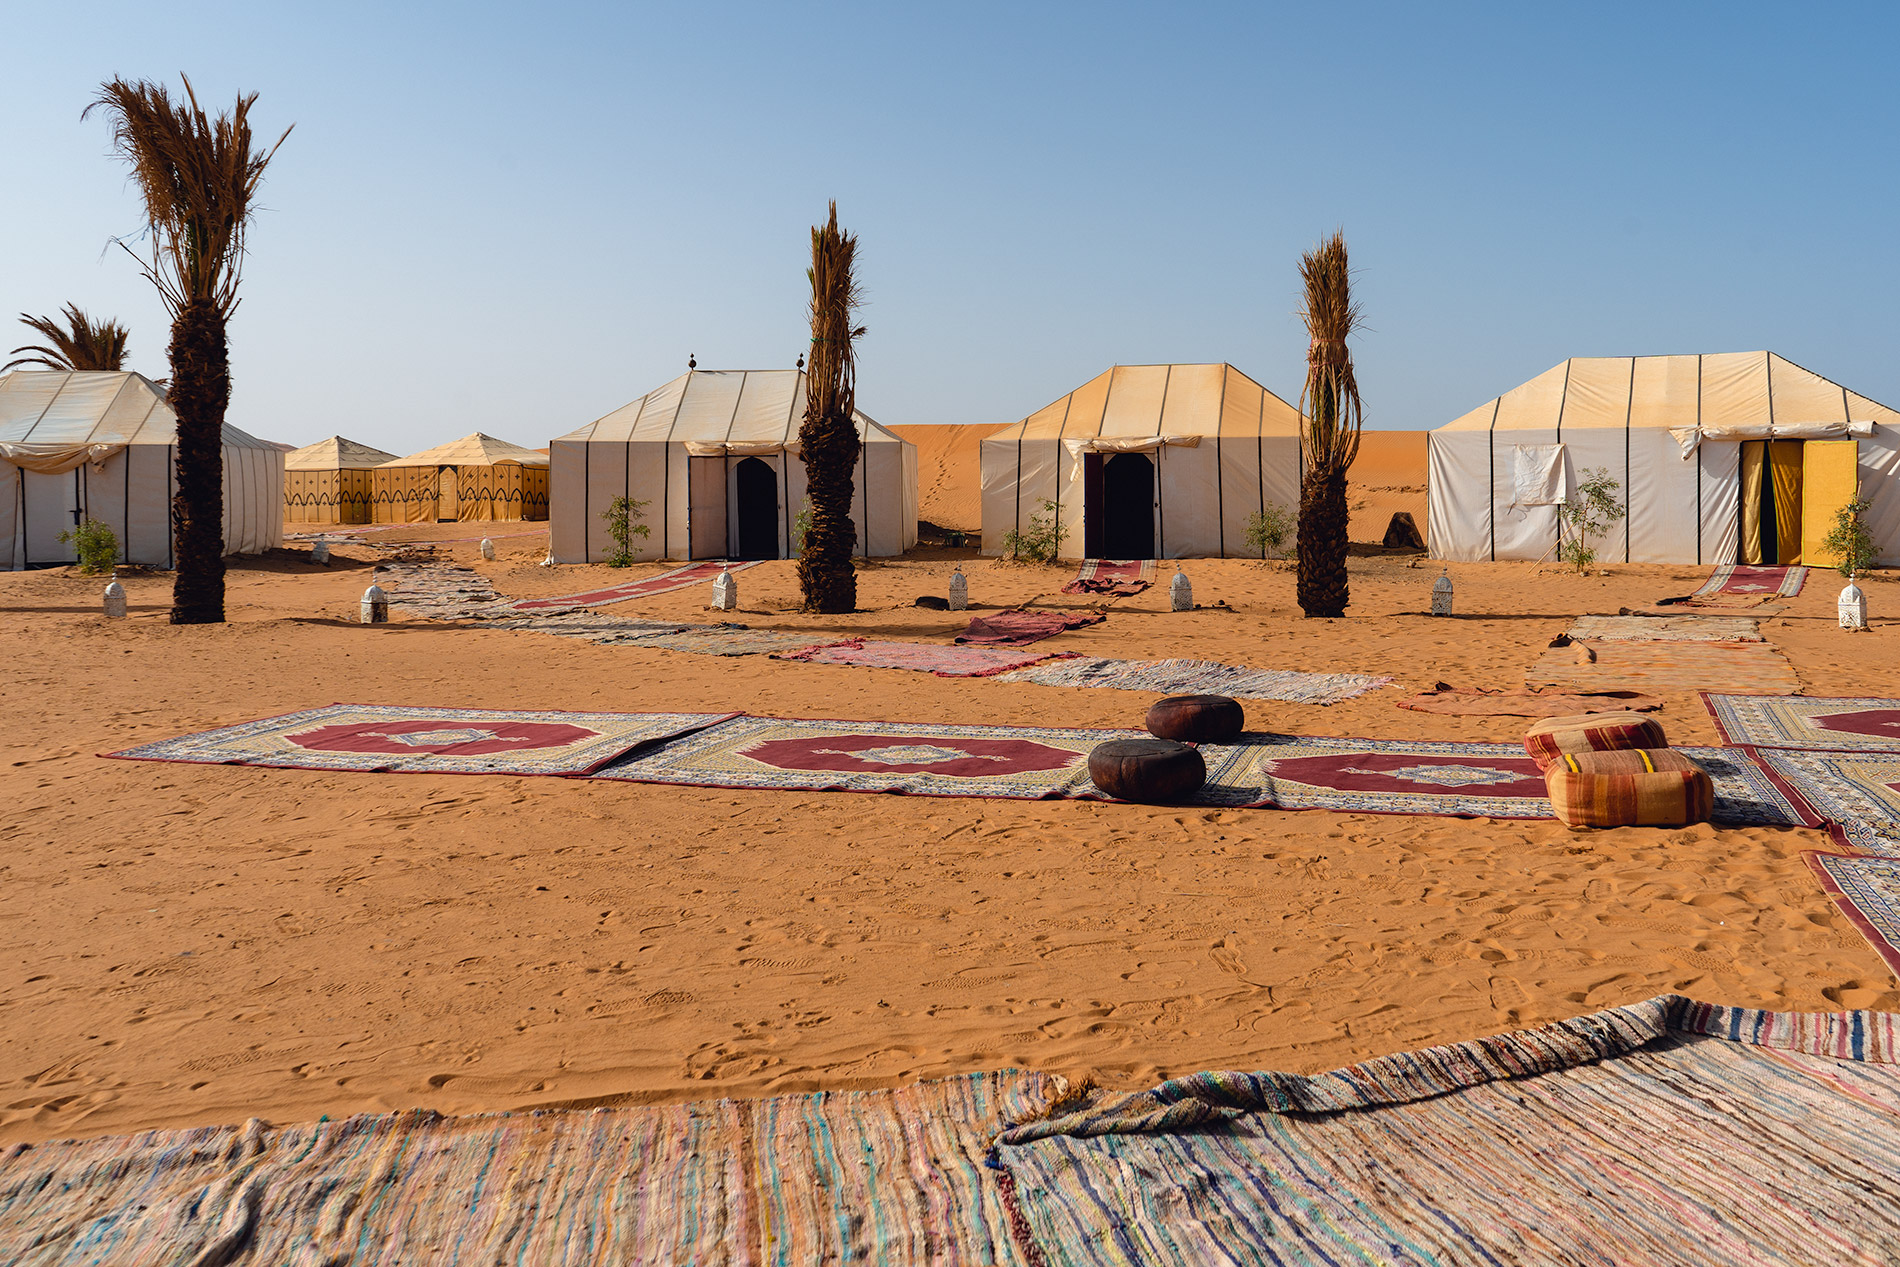 Our luxury desert camp in Morocco